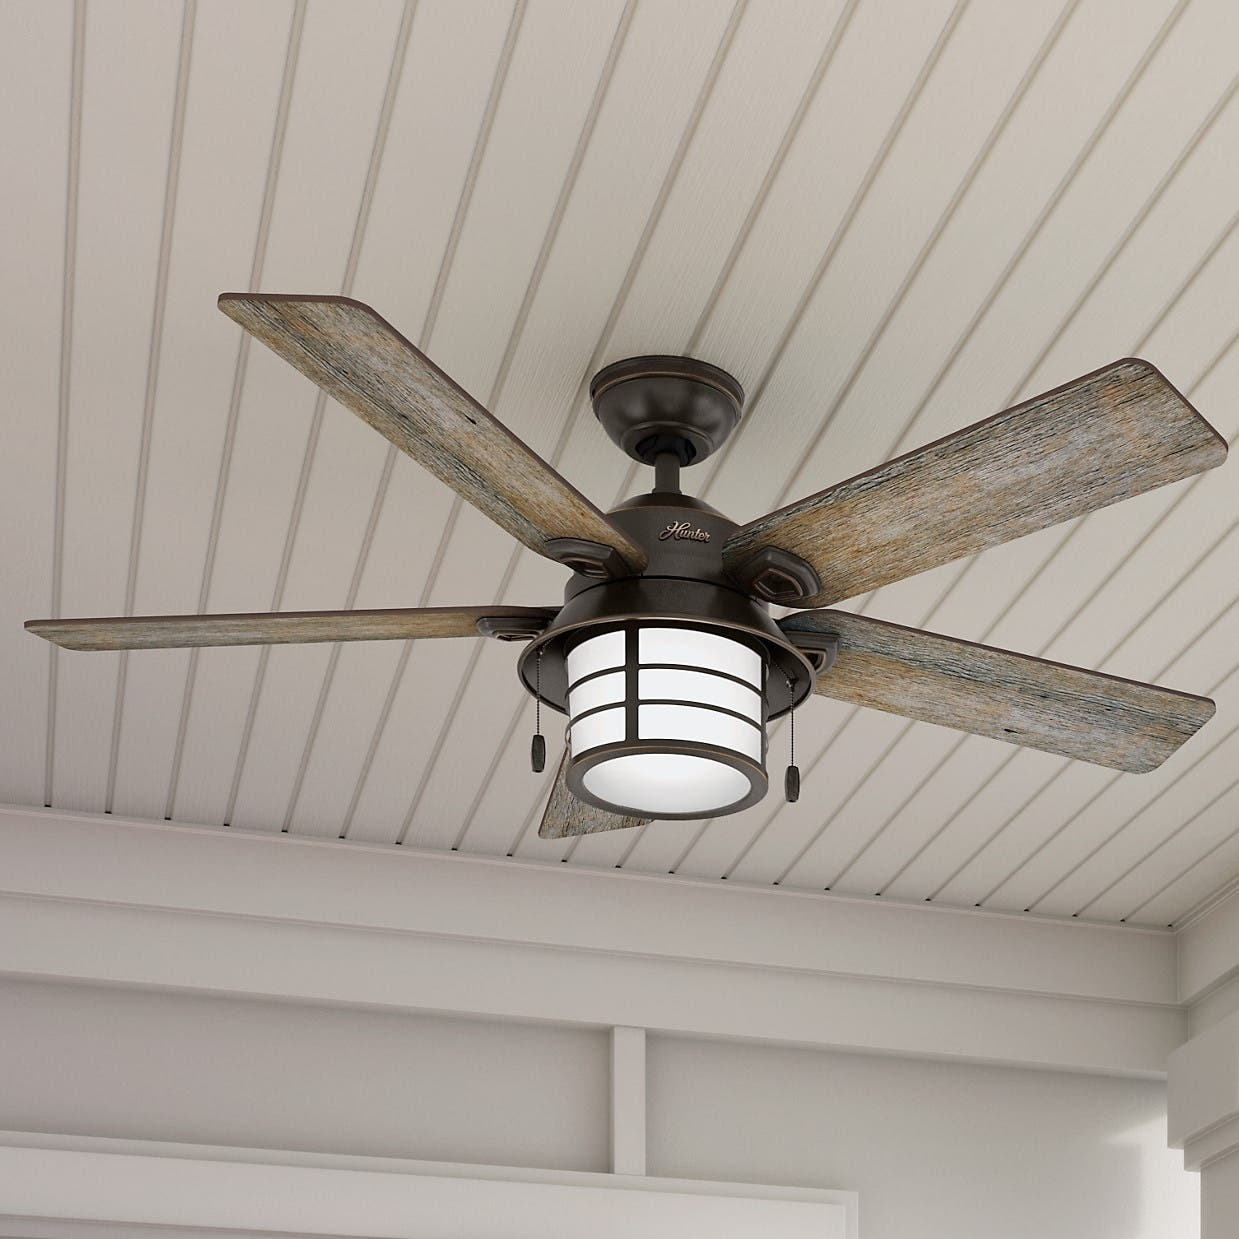 Hunter Isleworth 54 Onyx Bengal Ceiling Fan With Light At: Buy Ceiling Fans Online At Overstock.com